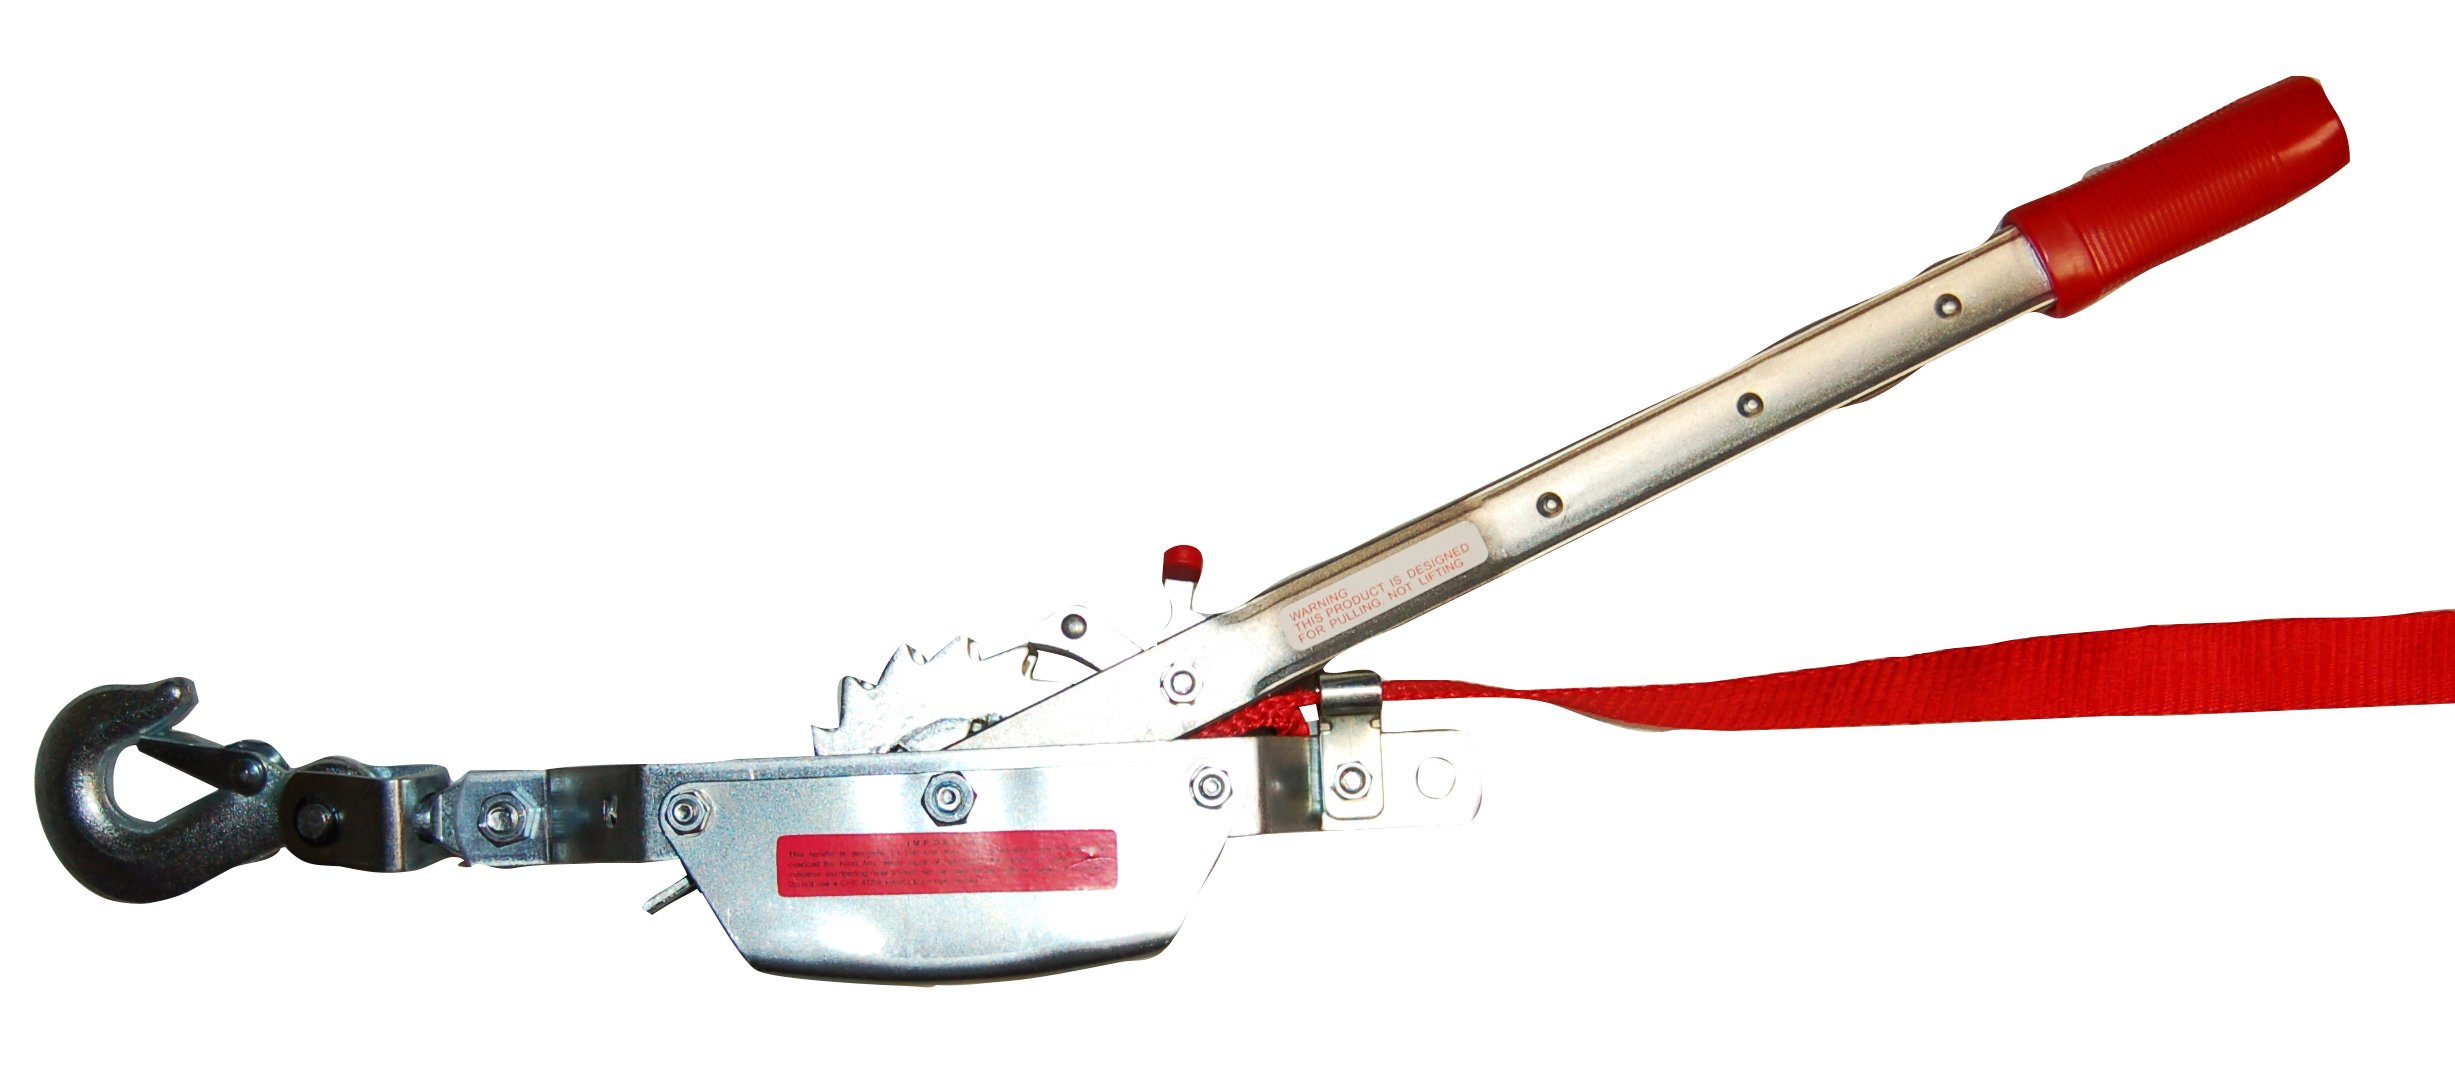 Ancra 96101 Web Puller, 1-Ton, Single Line with